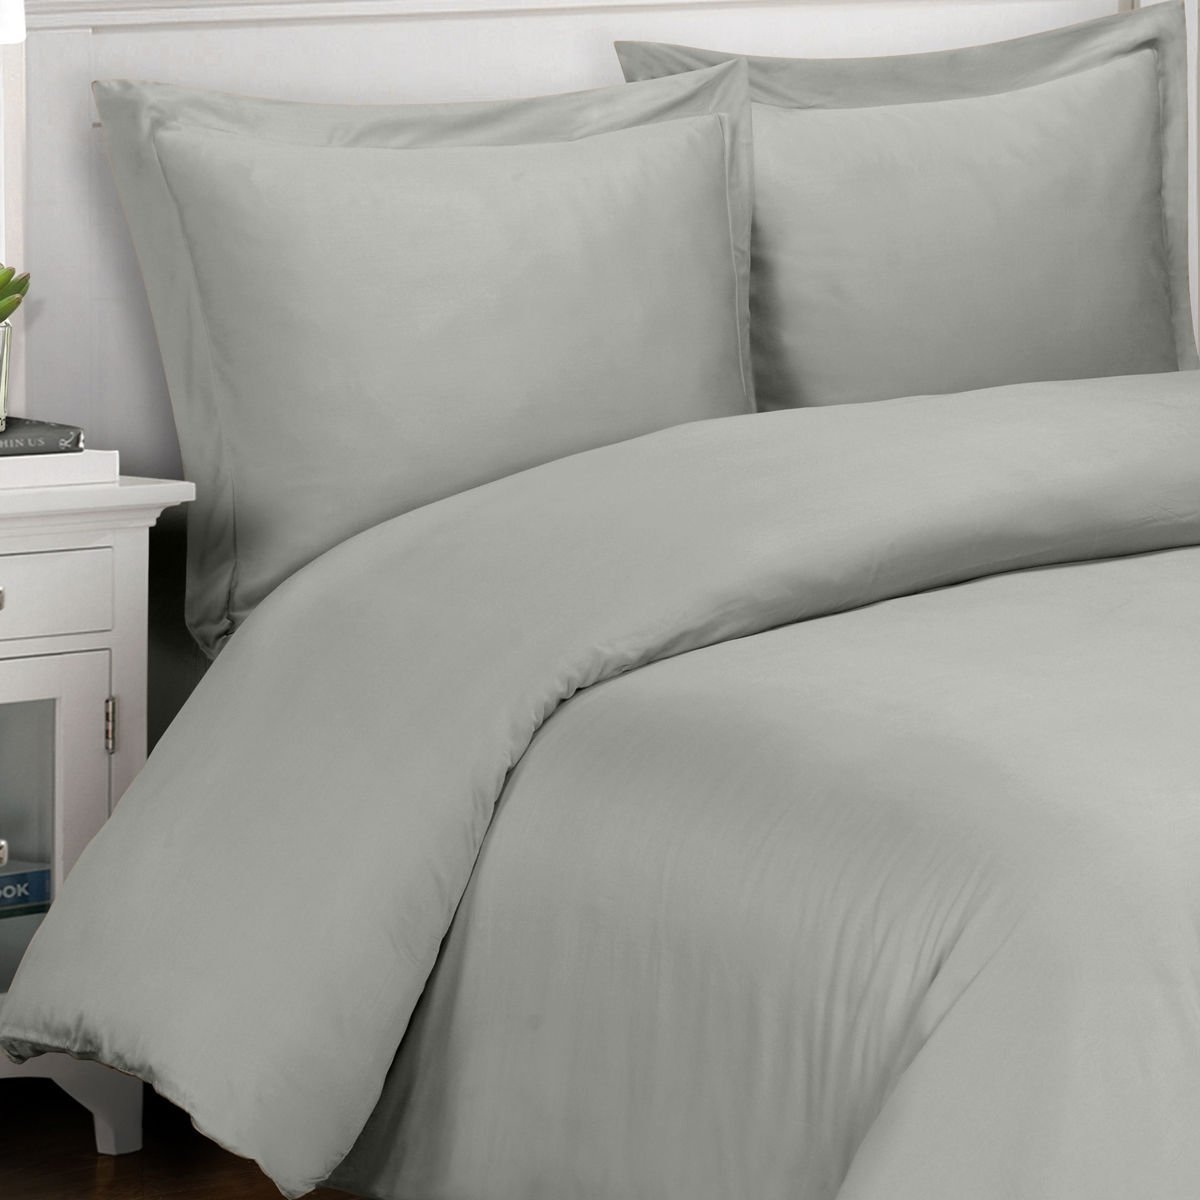 Amazon com silky and soft bamboo duvets 100 viscose from bamboo duvet cover set gray 3 piece king california king size duvet cover set home kitchen